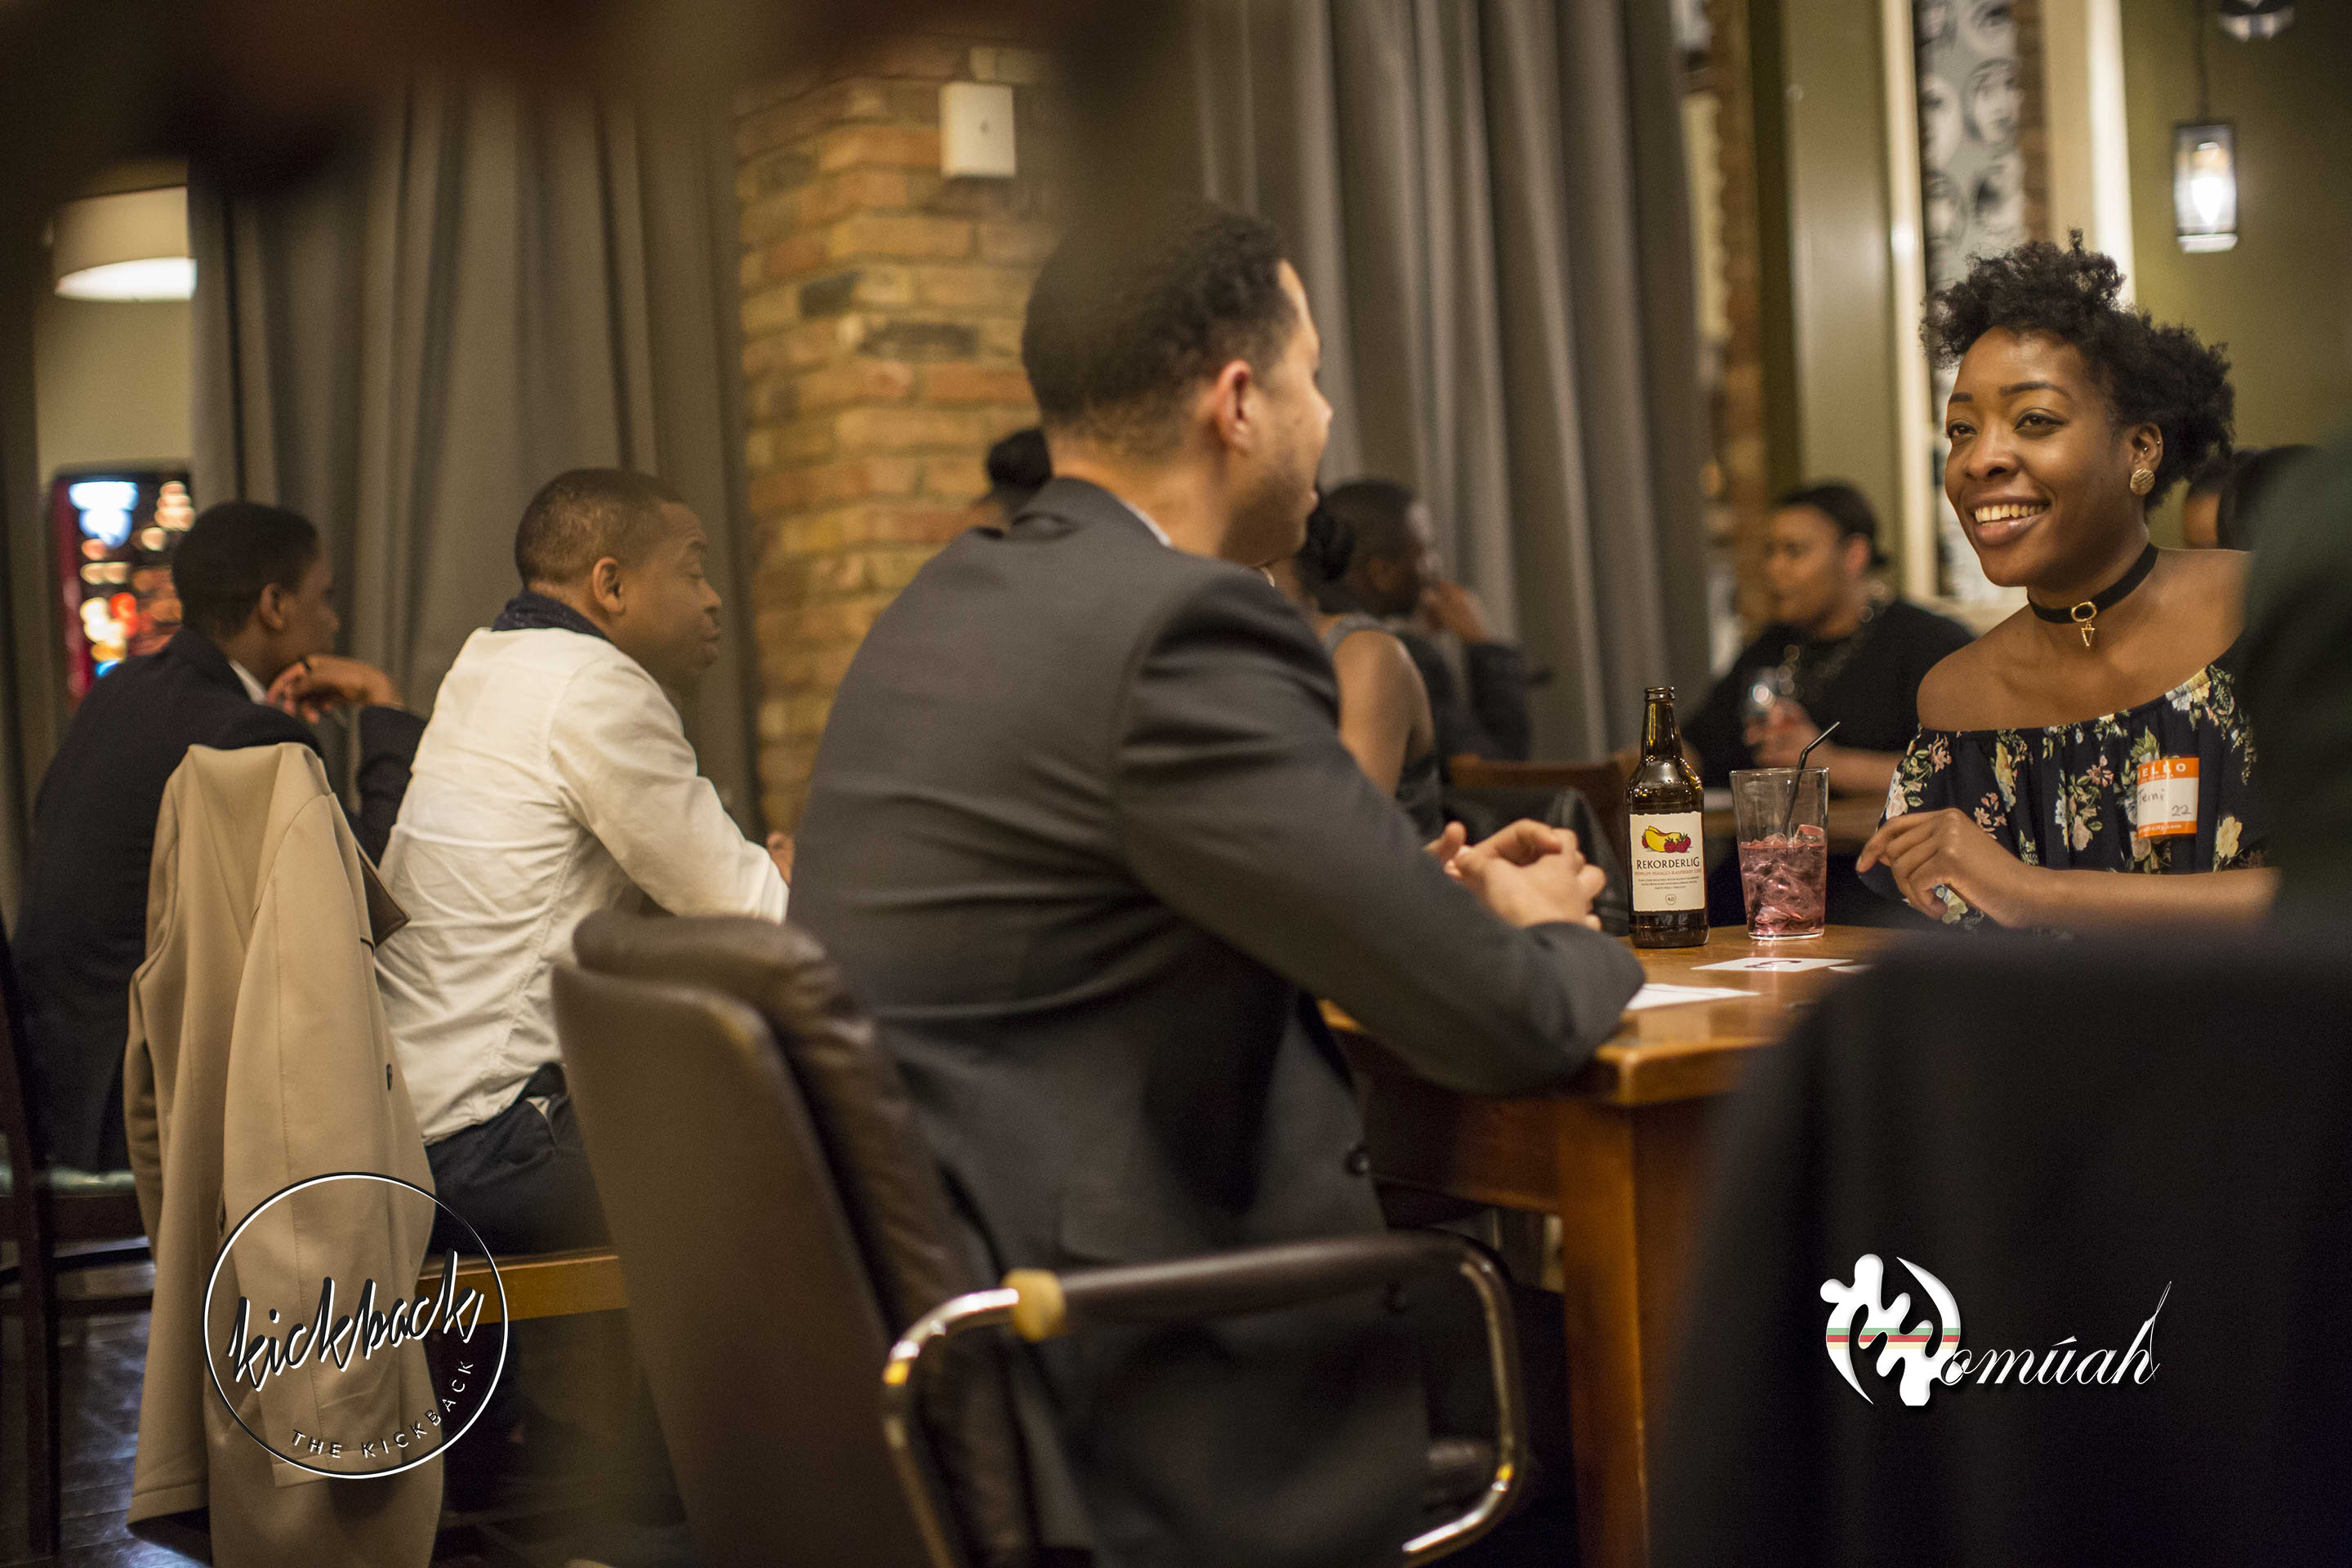 Black speed dating events in philadelphia